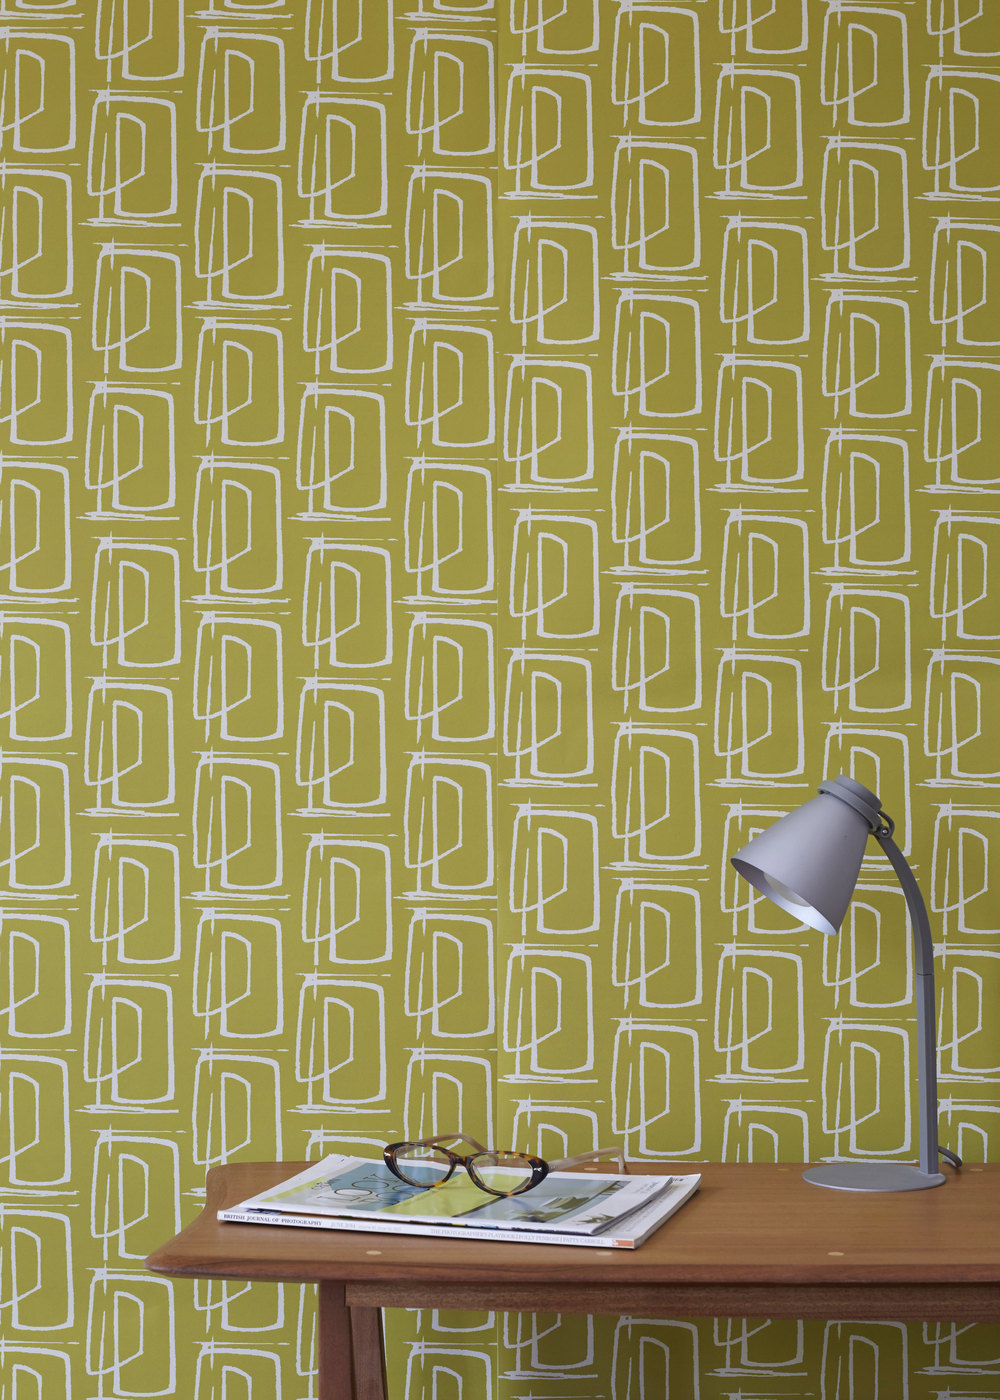 wallpaper in building layout design ochre.jpg